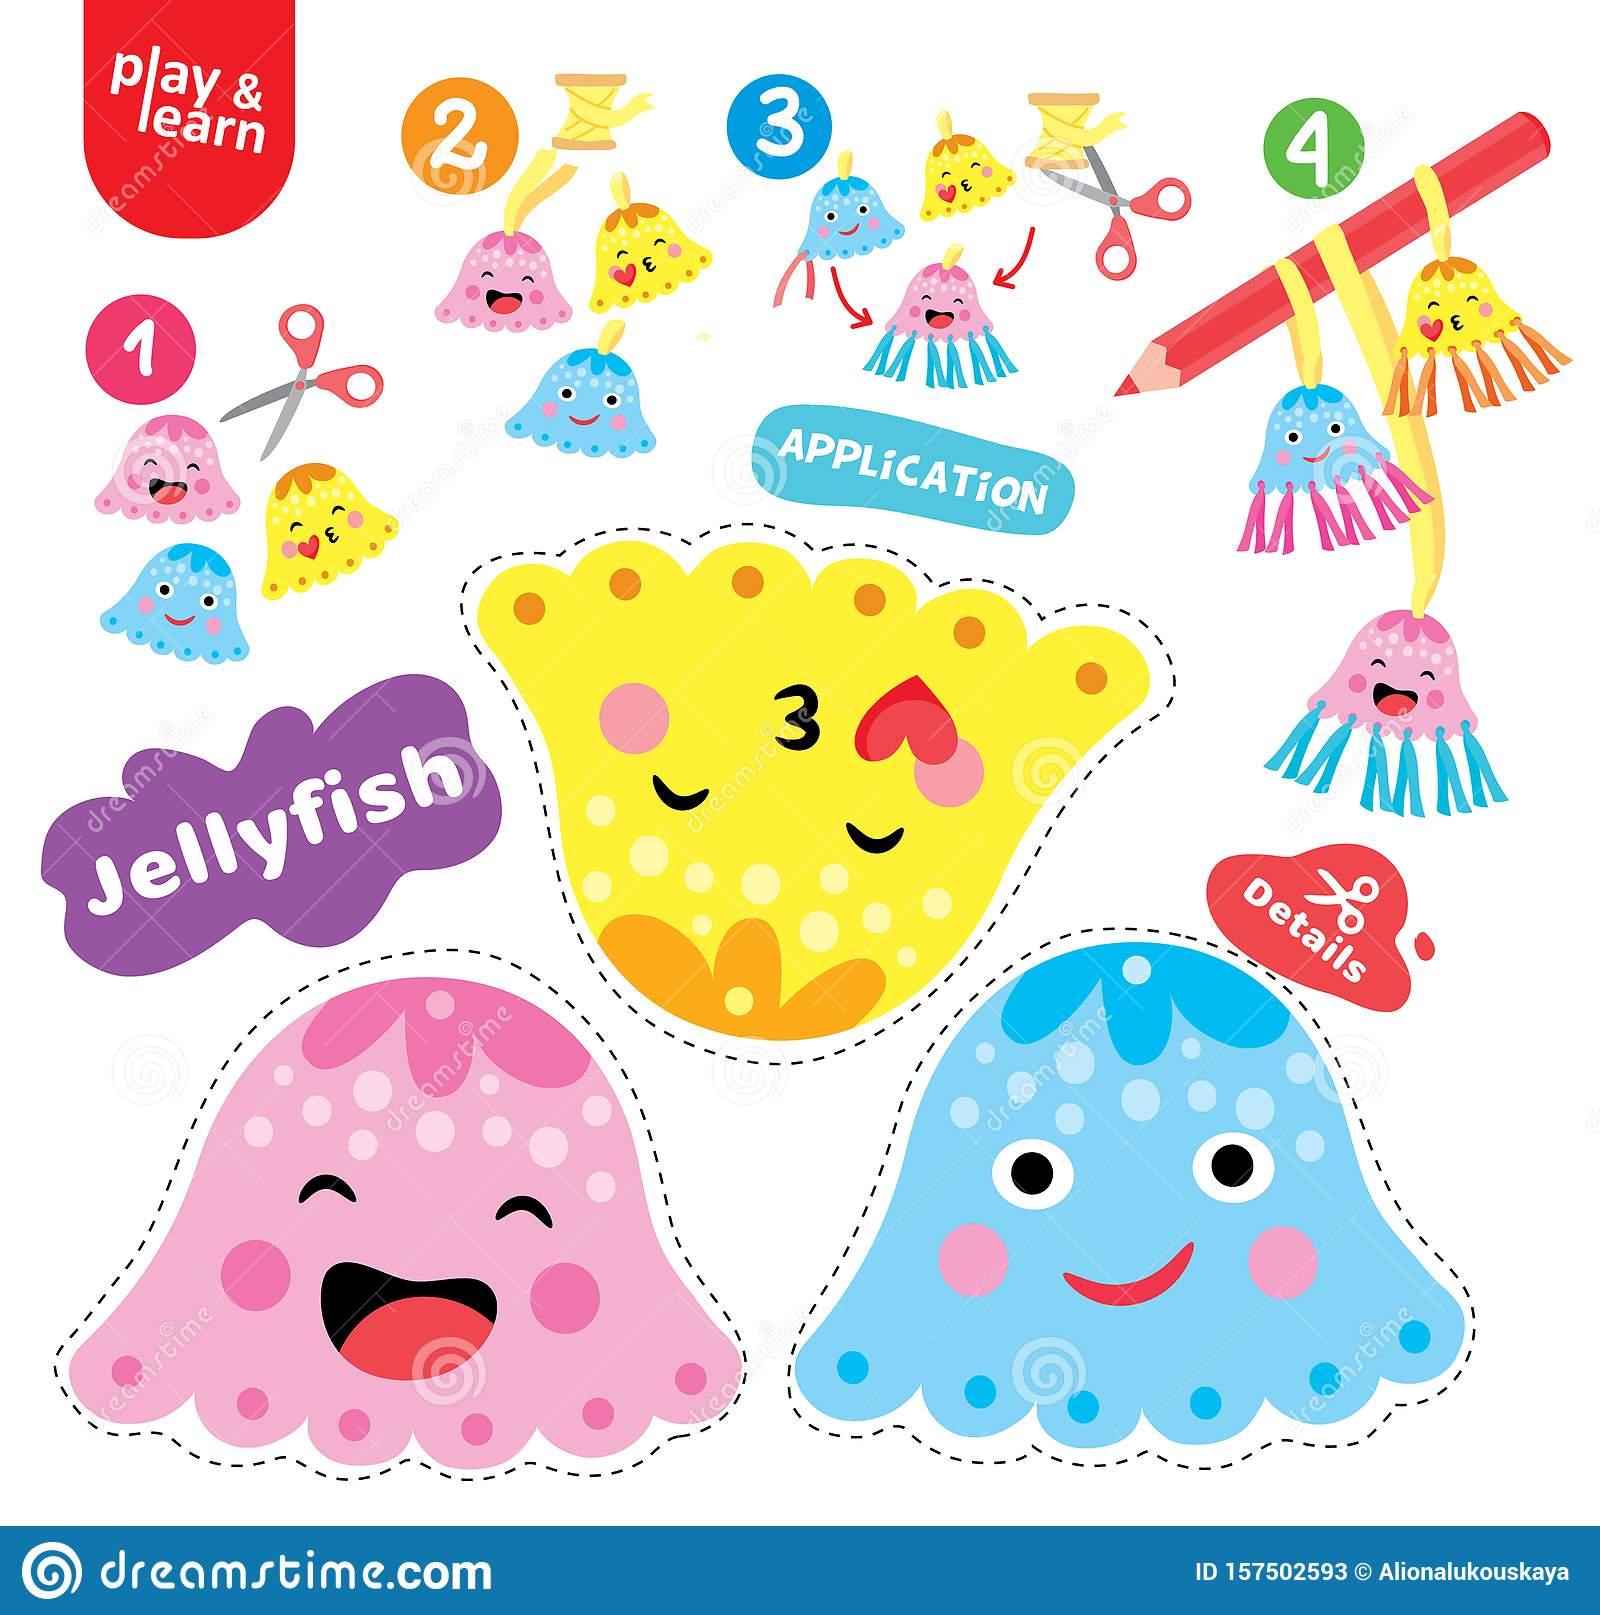 Application Jellyfish Kid Game Printable Worksheet Vector